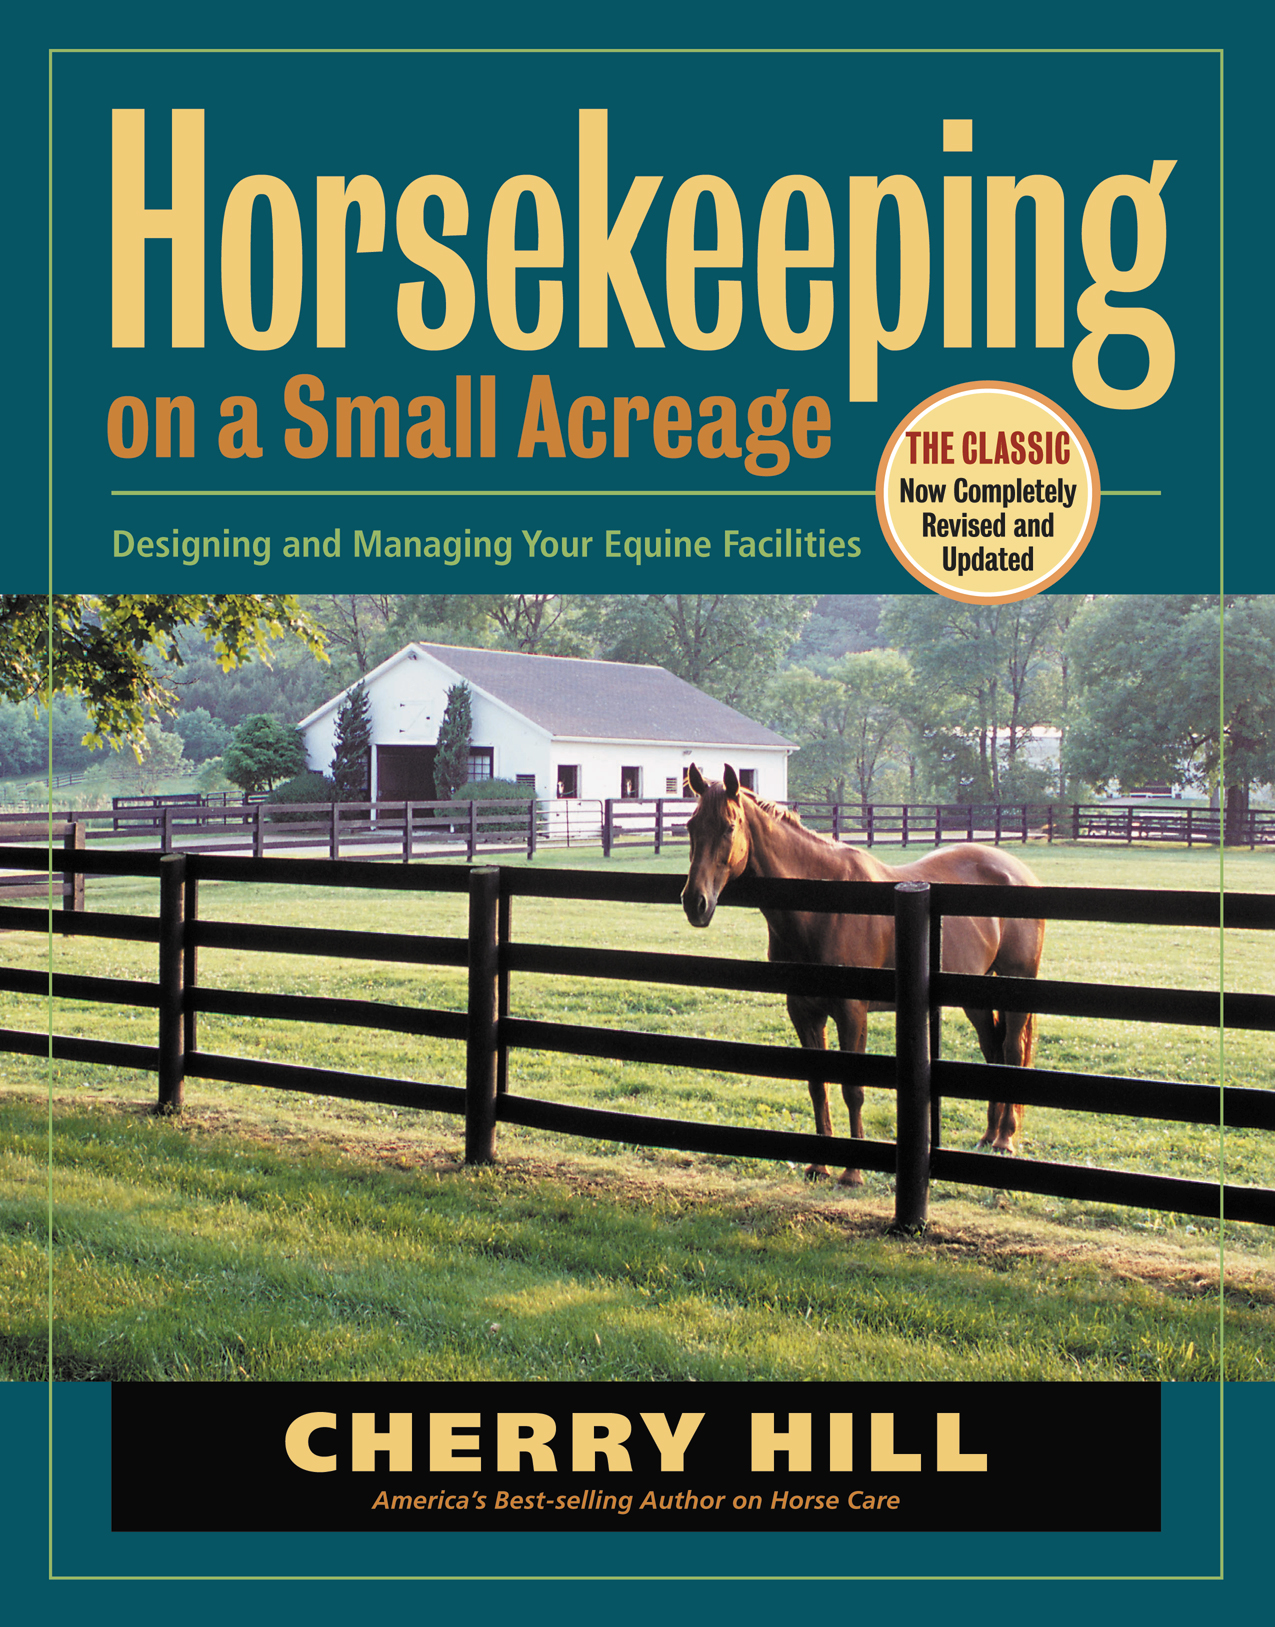 Horsekeeping on a Small Acreage Designing and Managing Your Equine Facilities - Cherry Hill